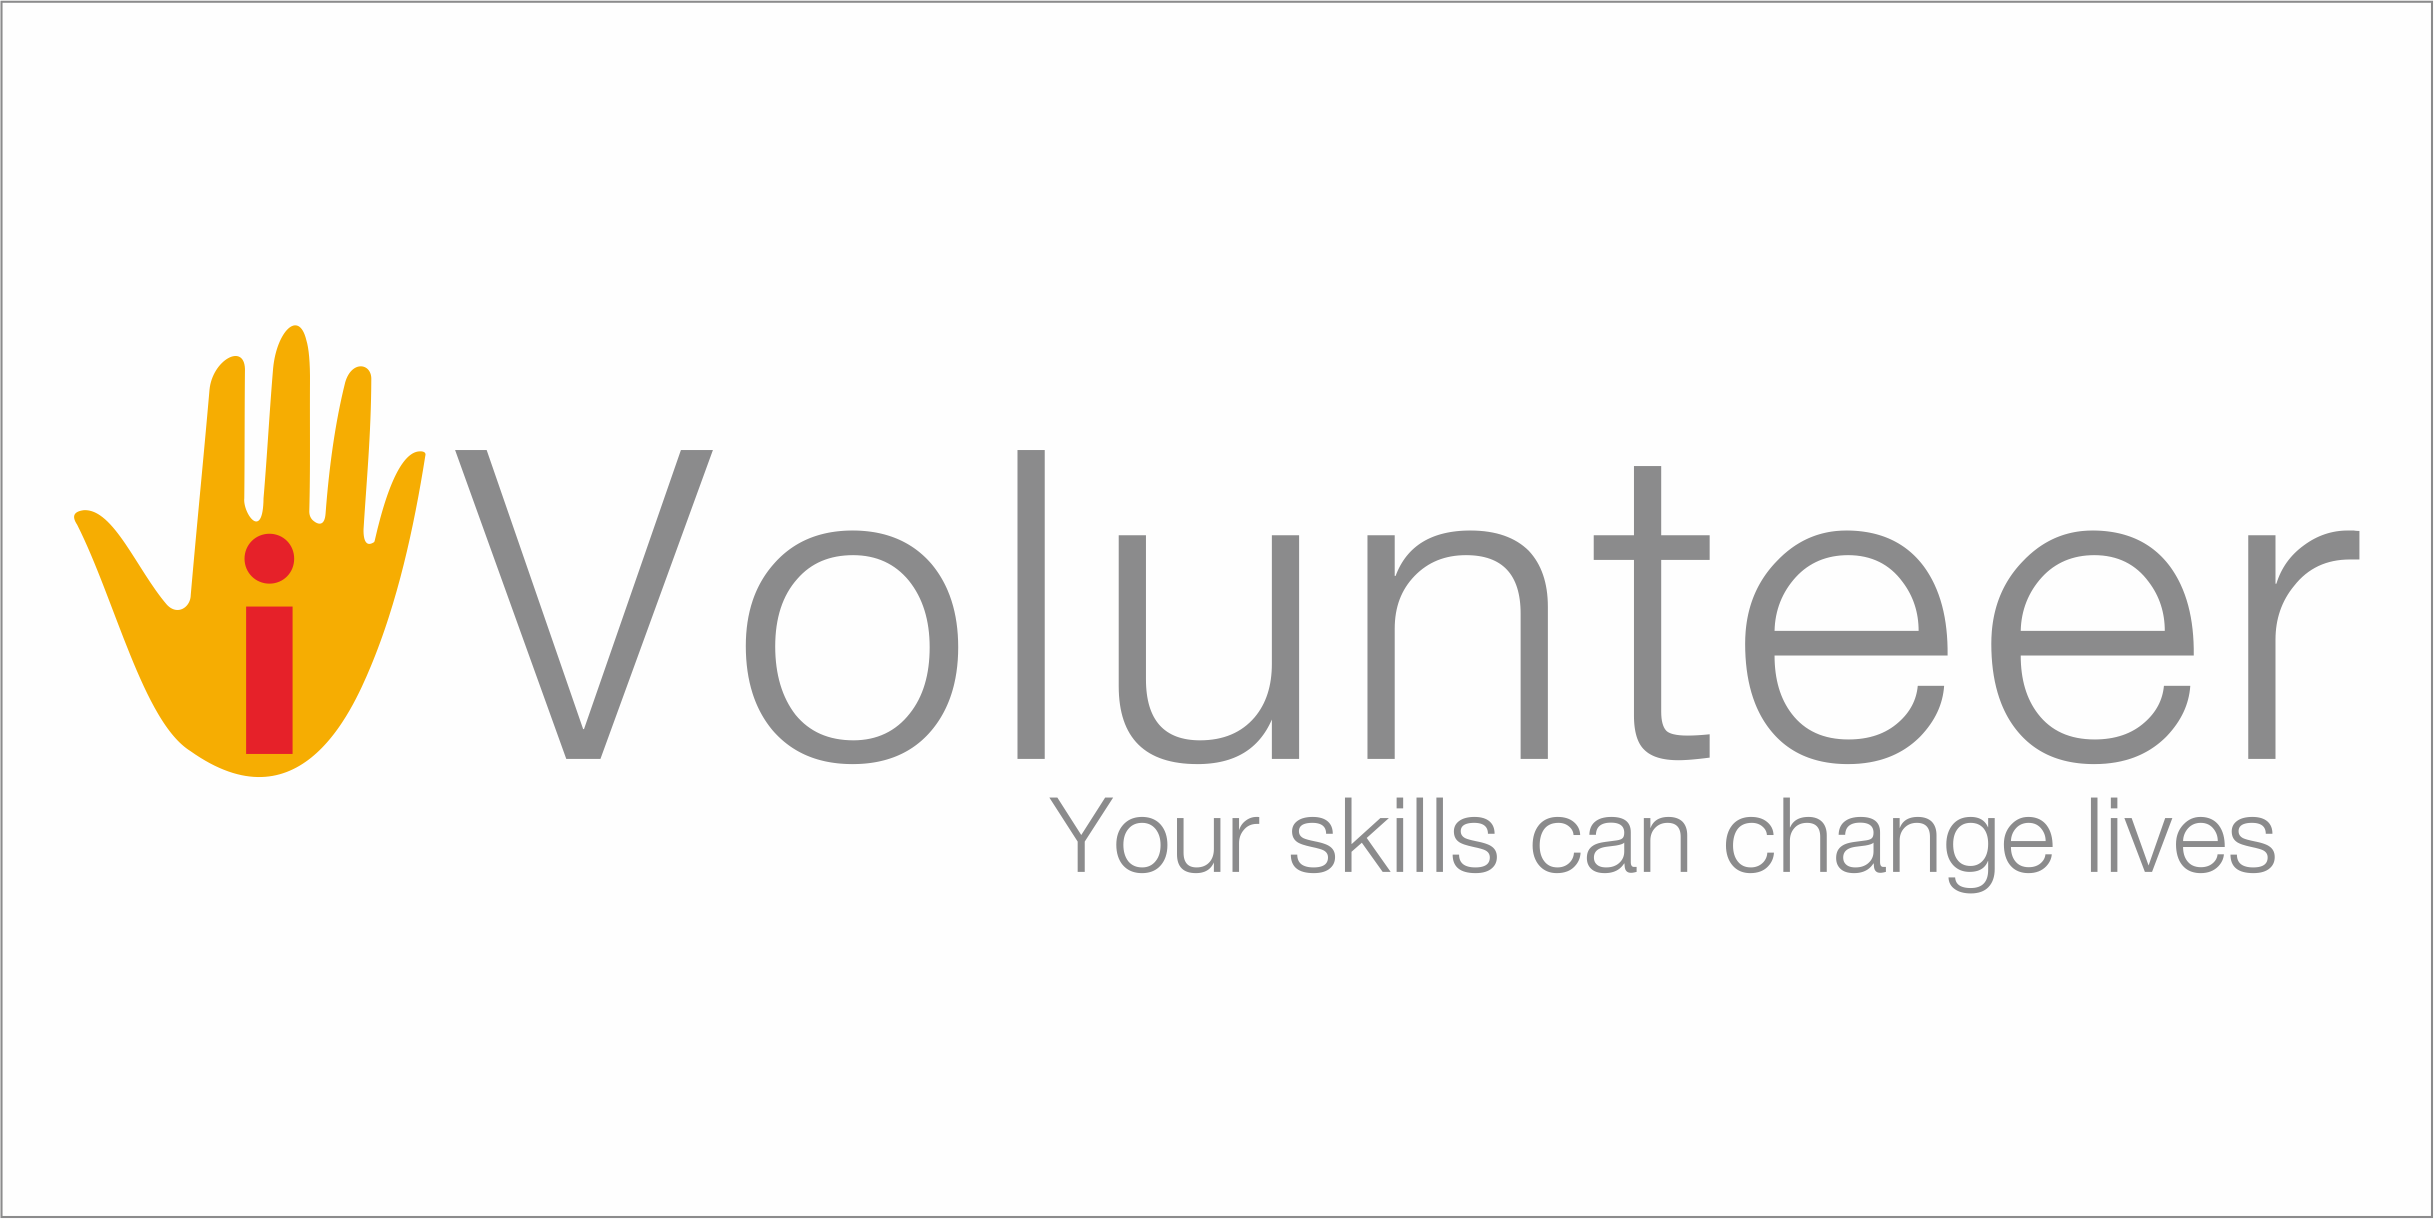 Mitra Technology Foundation (iVolunteer)